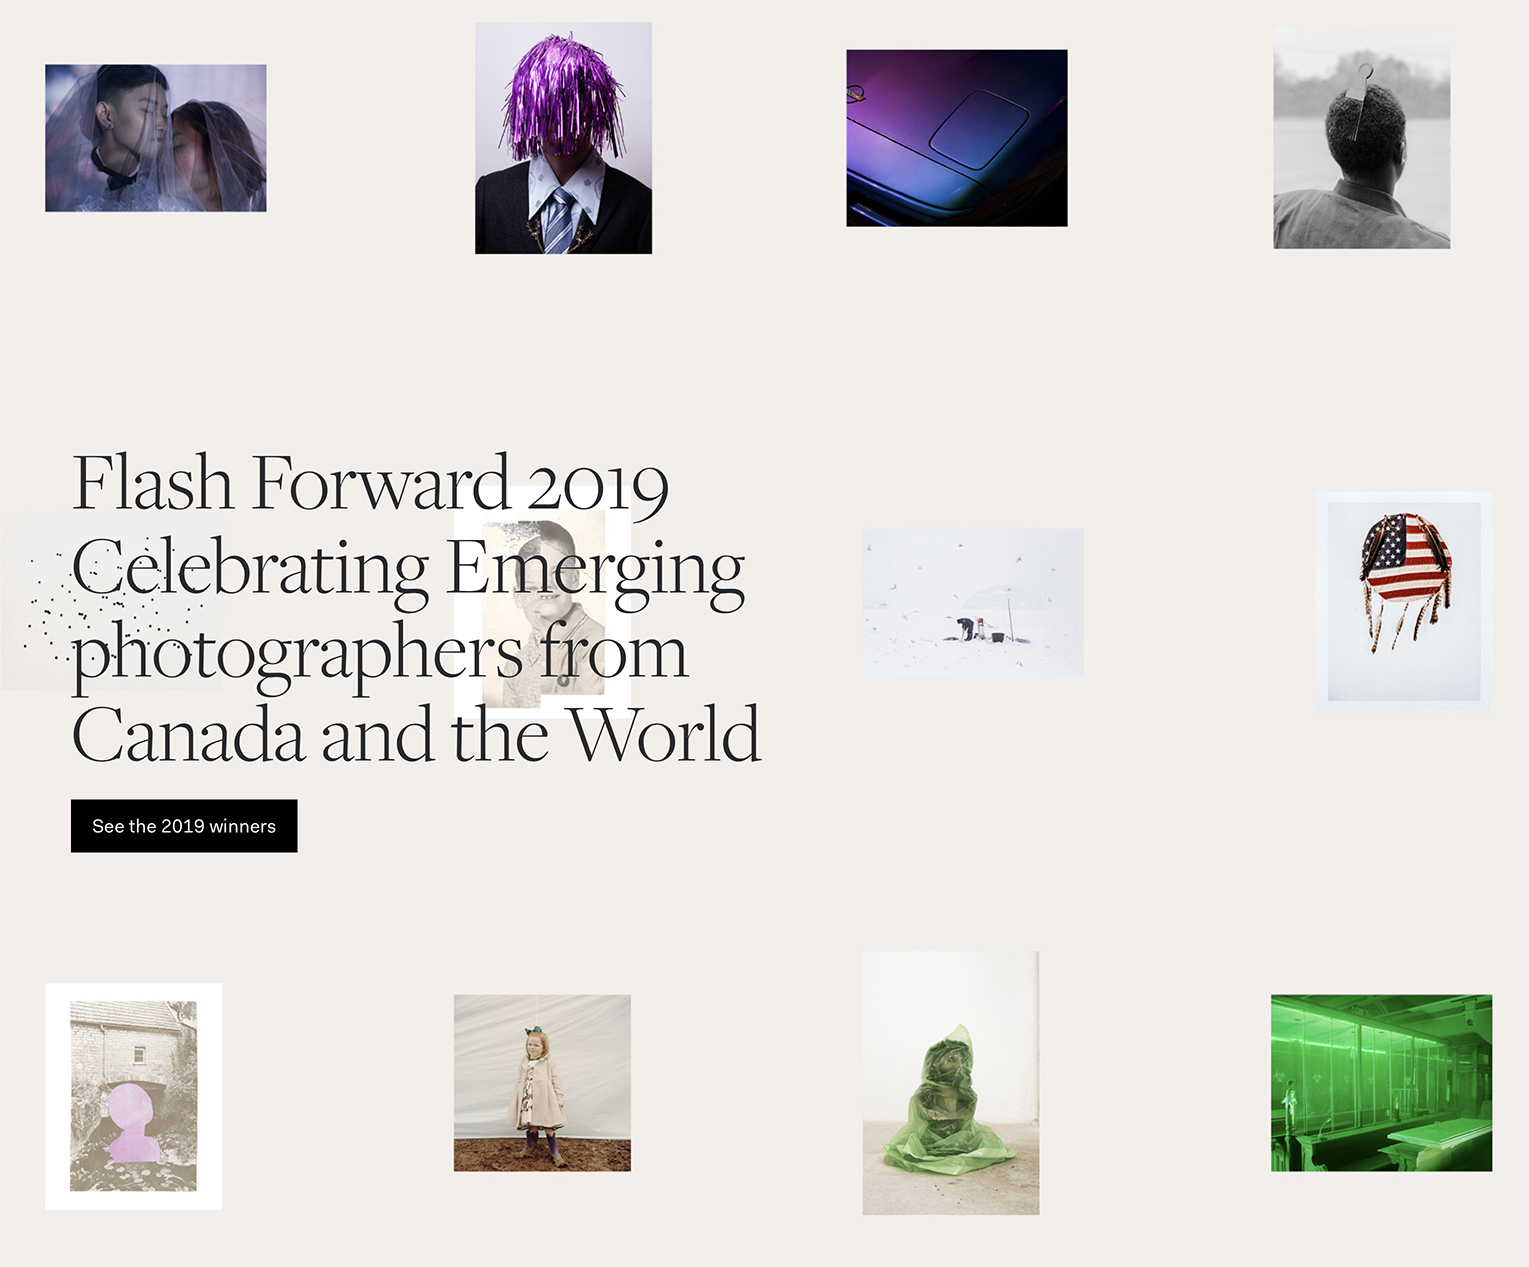 Flash Forward 2019 home page